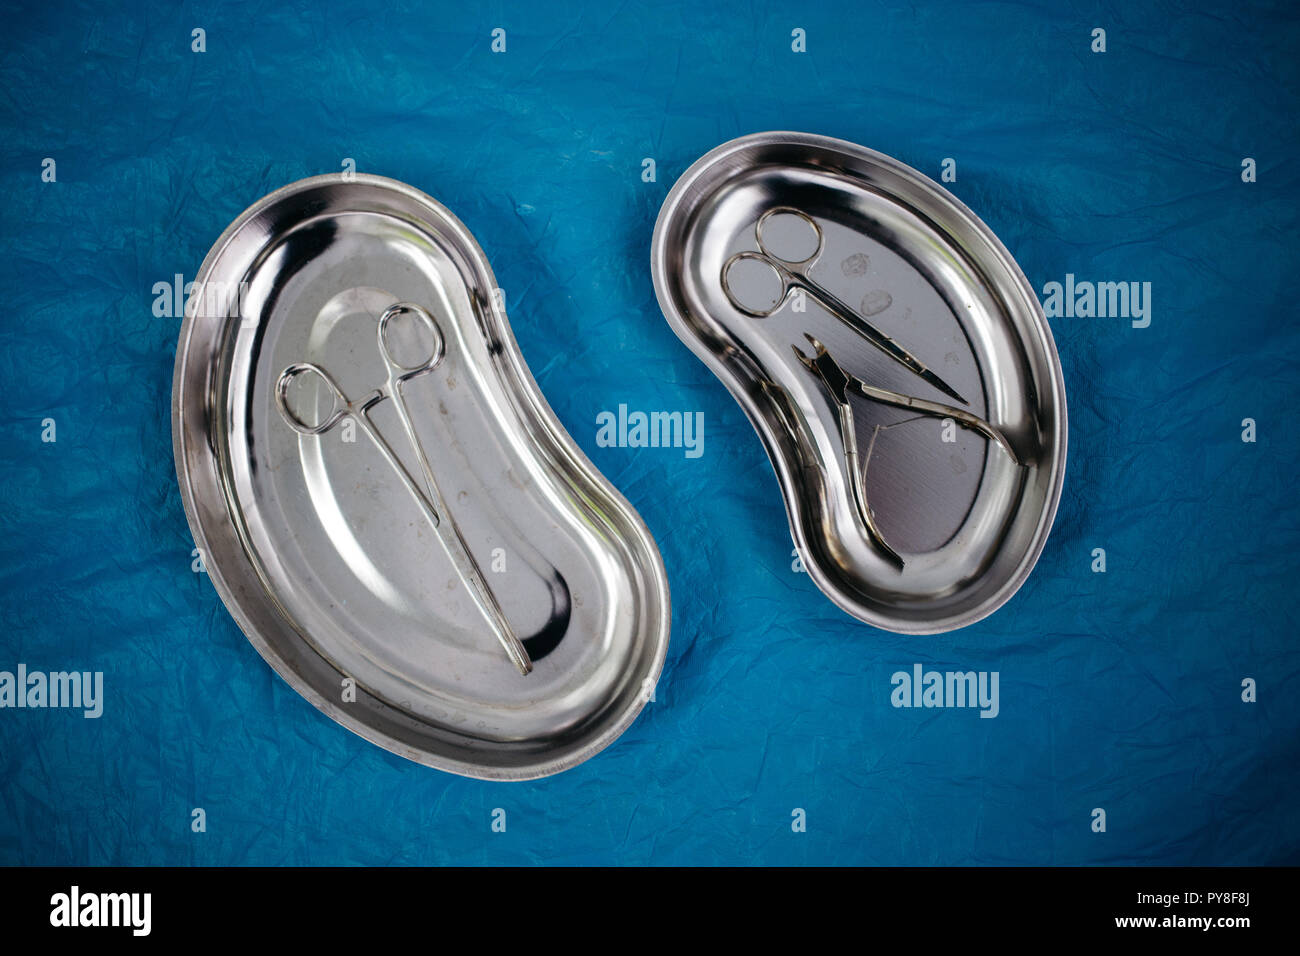 top view of medical instruments in the tray, disposable gloves on blue background. health, longevity Stock Photo